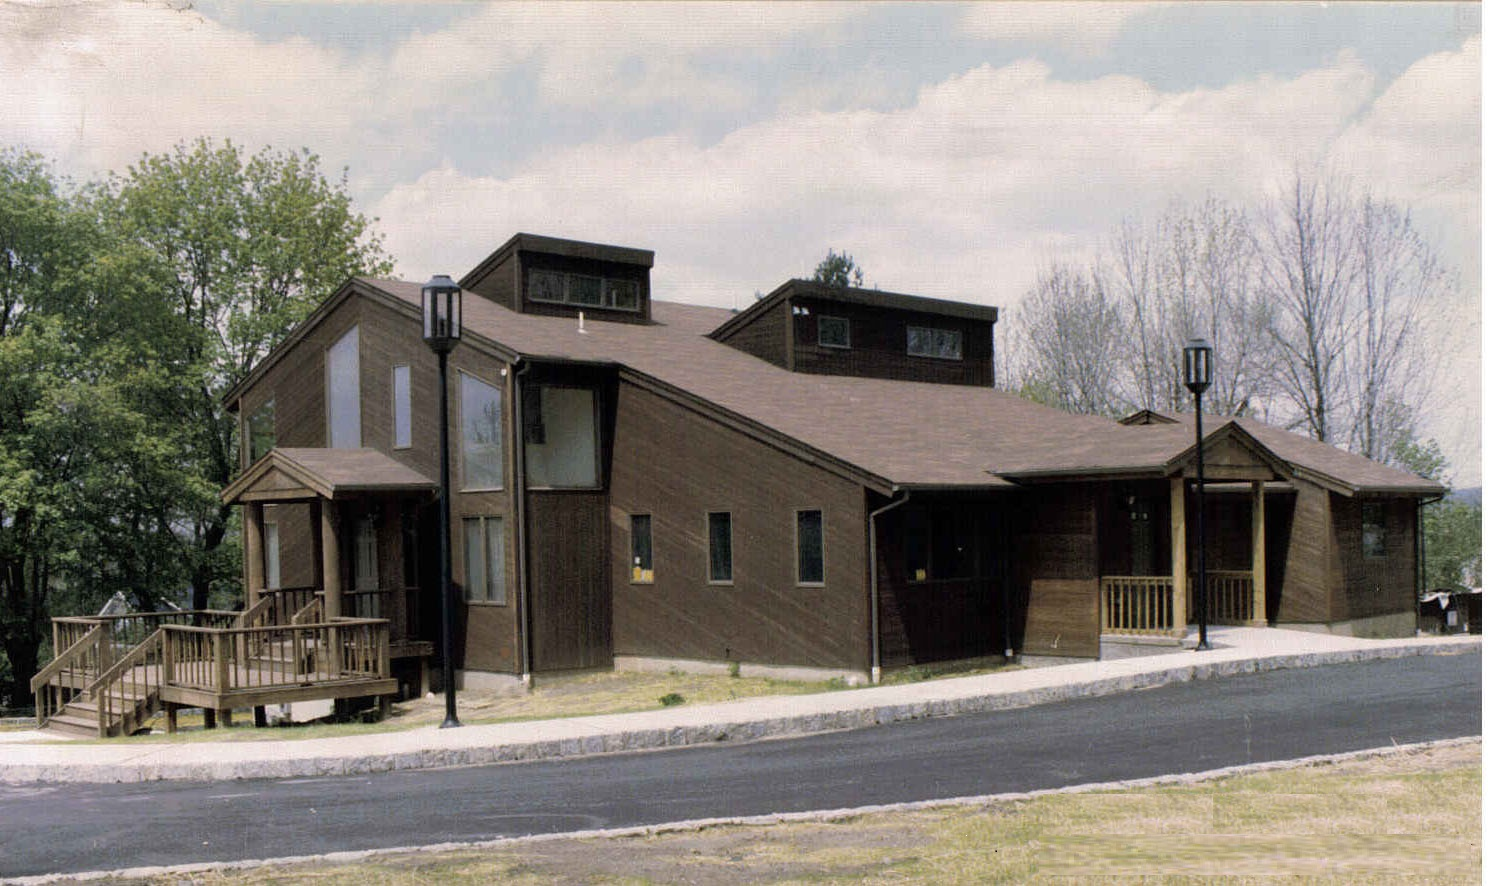 Dr's clinic & residence, Little Falls New Jersey